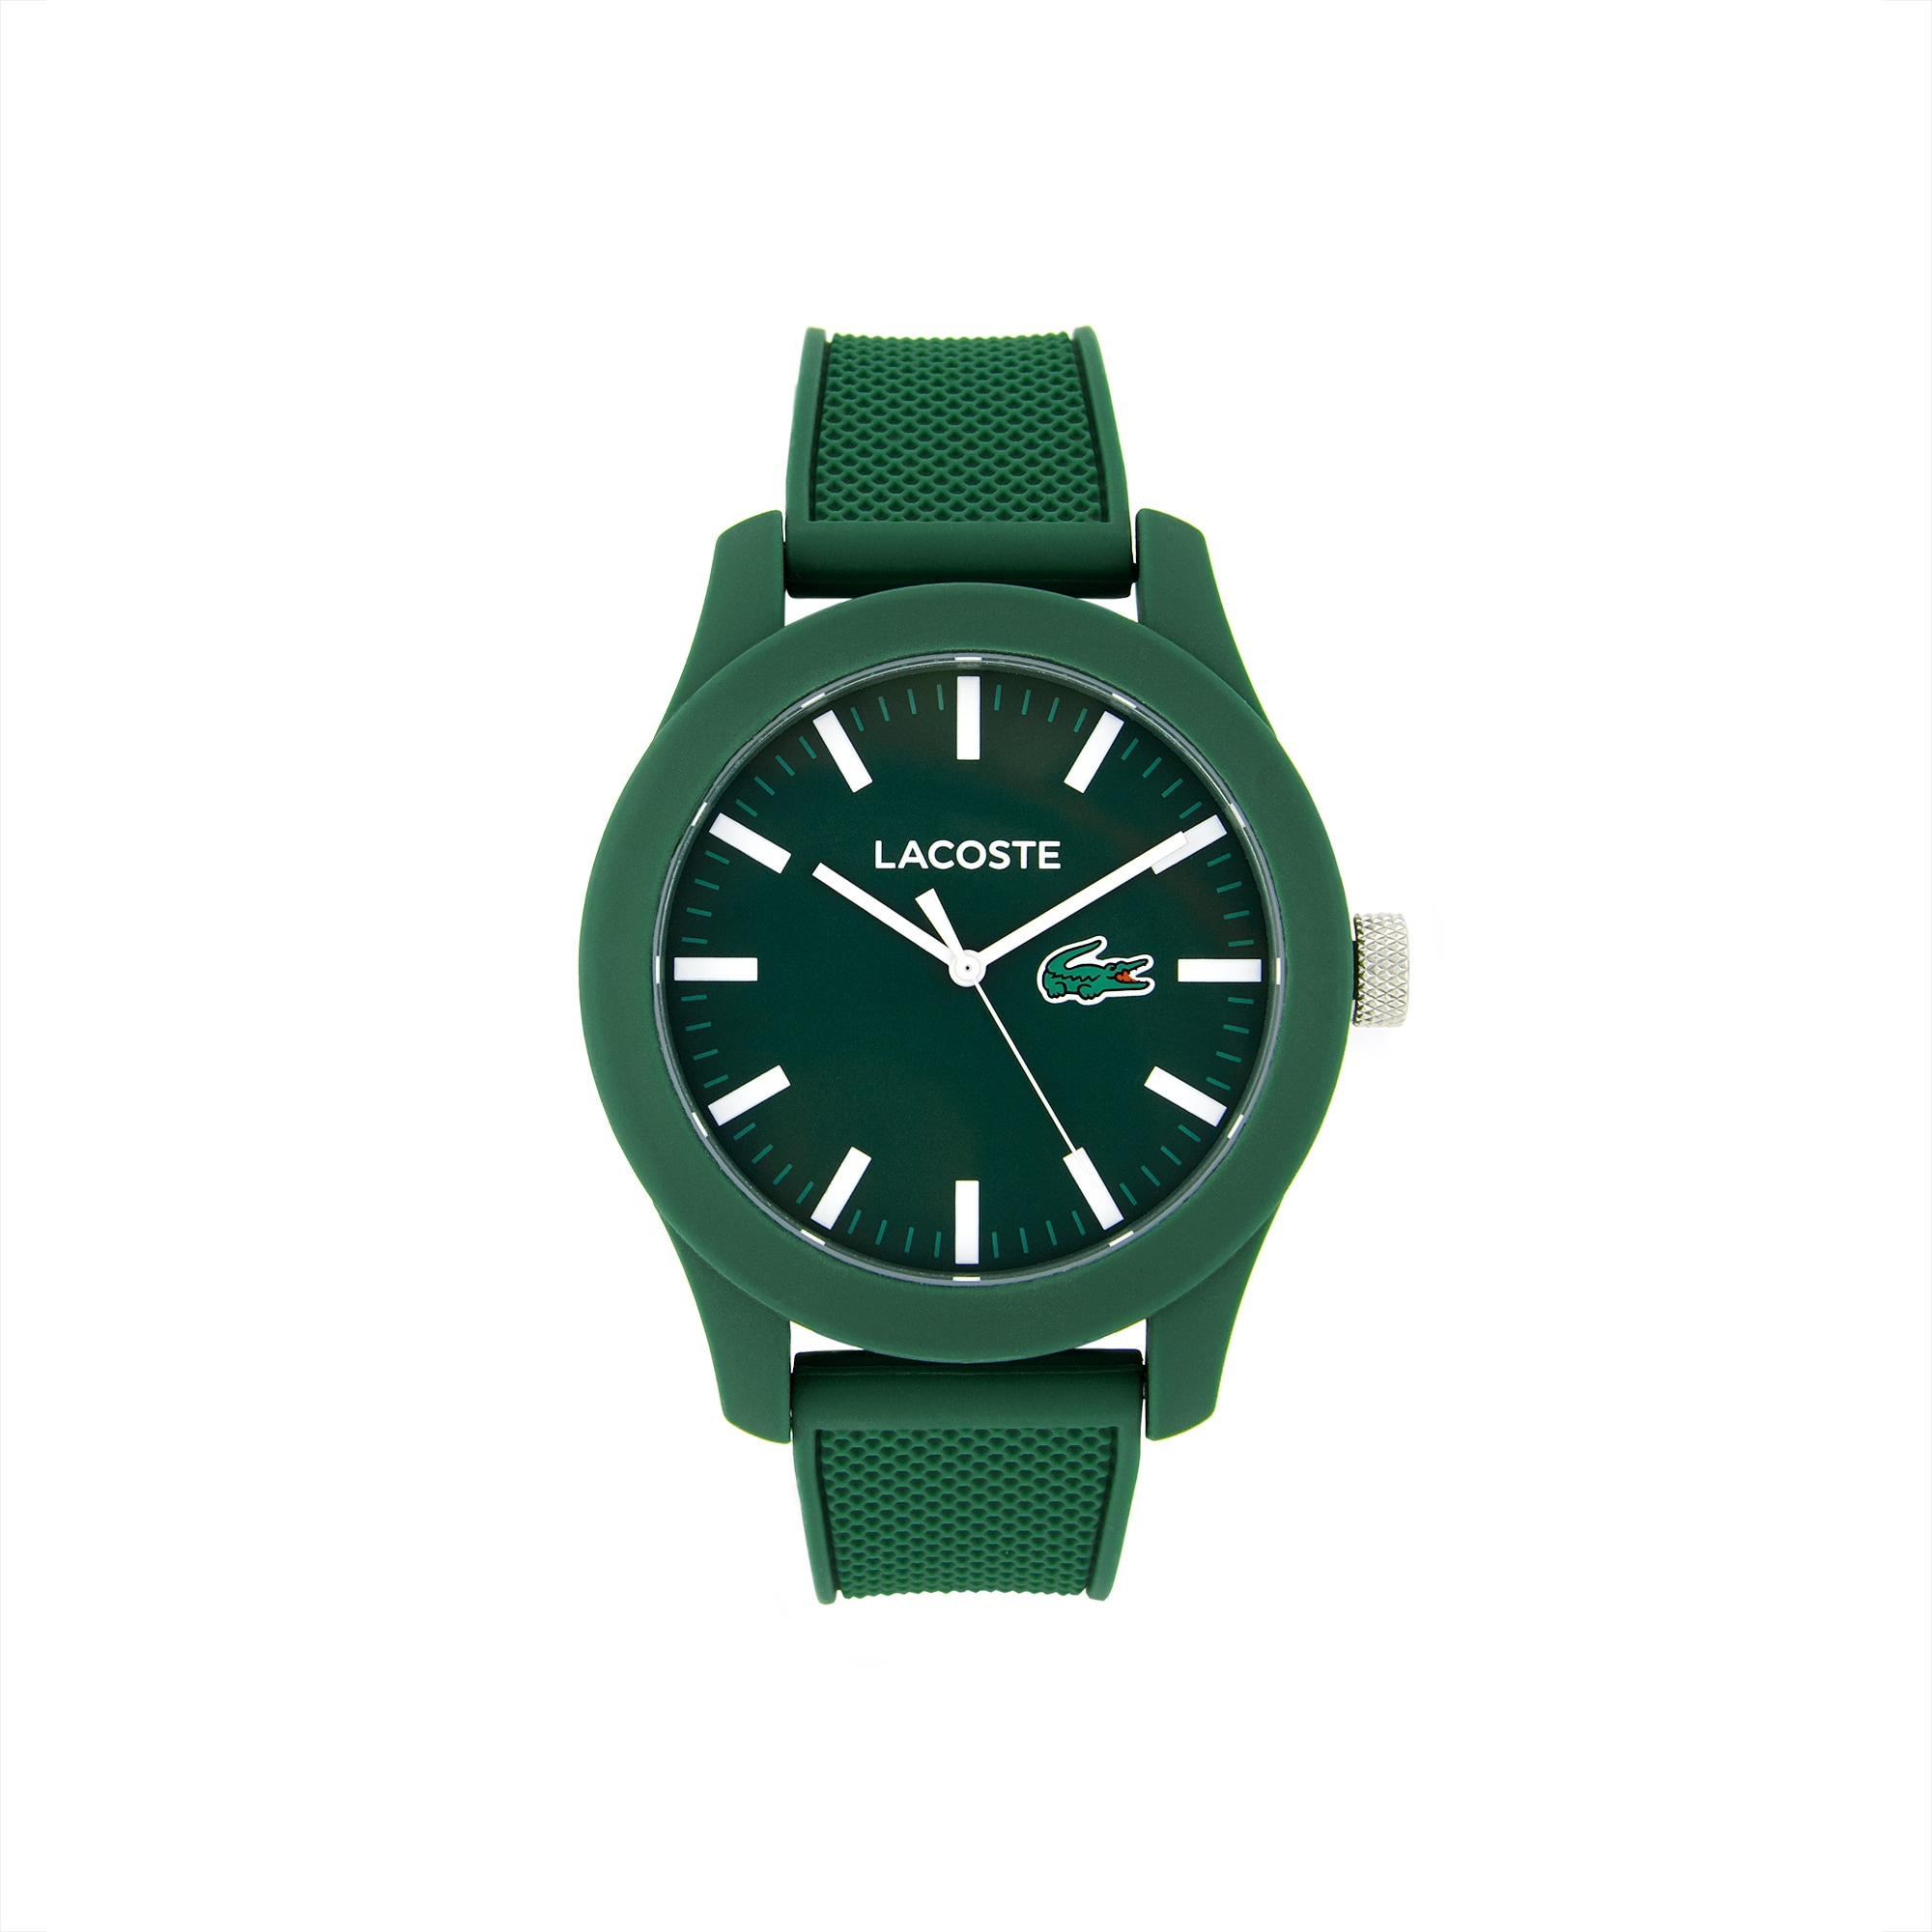 Men's Lacoste 12.12 Watch - Green Edition